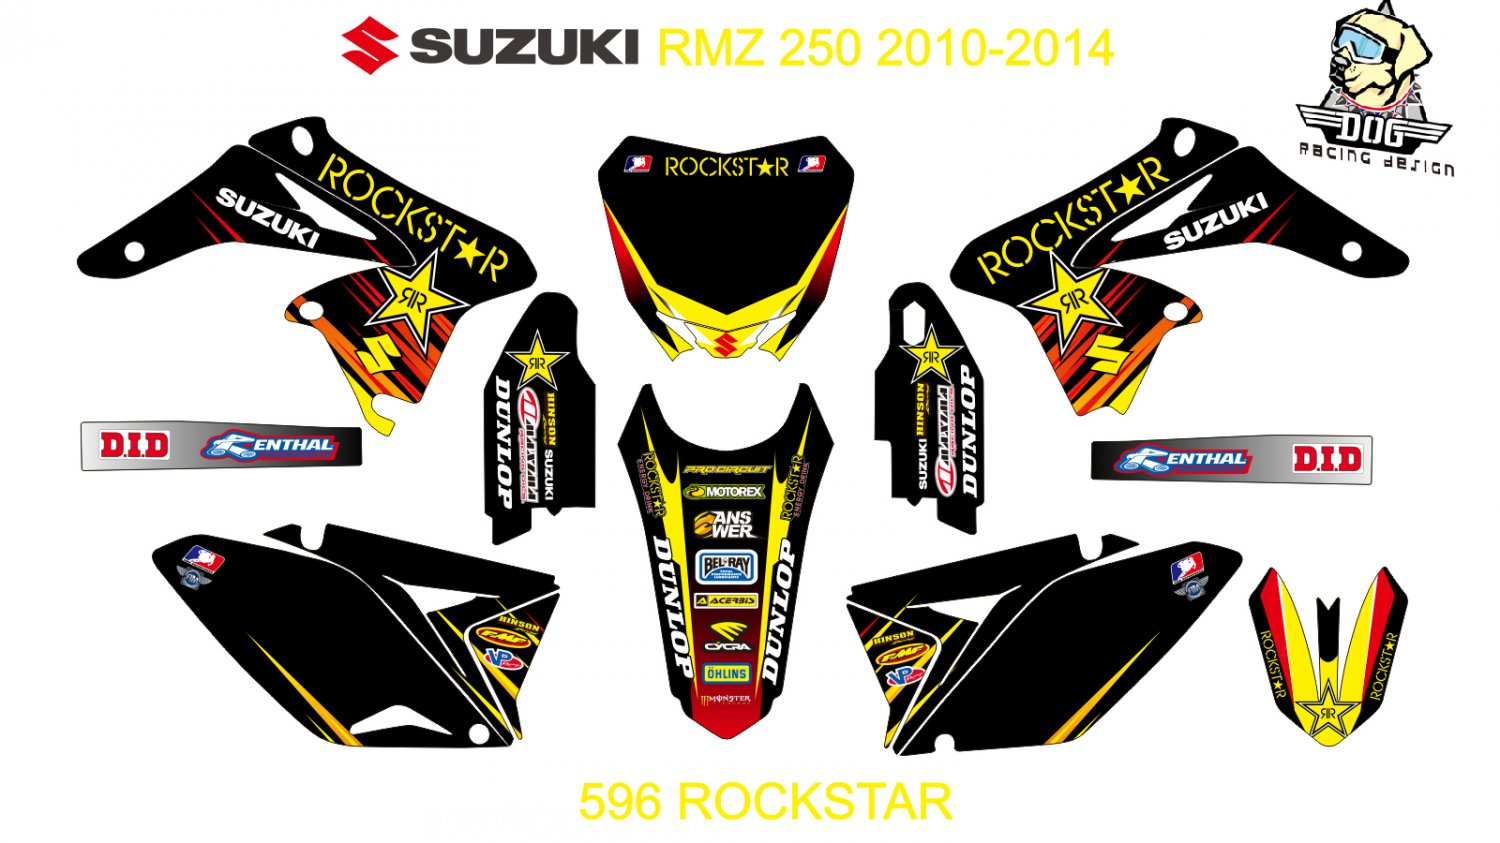 SUZUKI RMZ 250 2010-2014 GRAPHIC DECAL KIT CODE.596